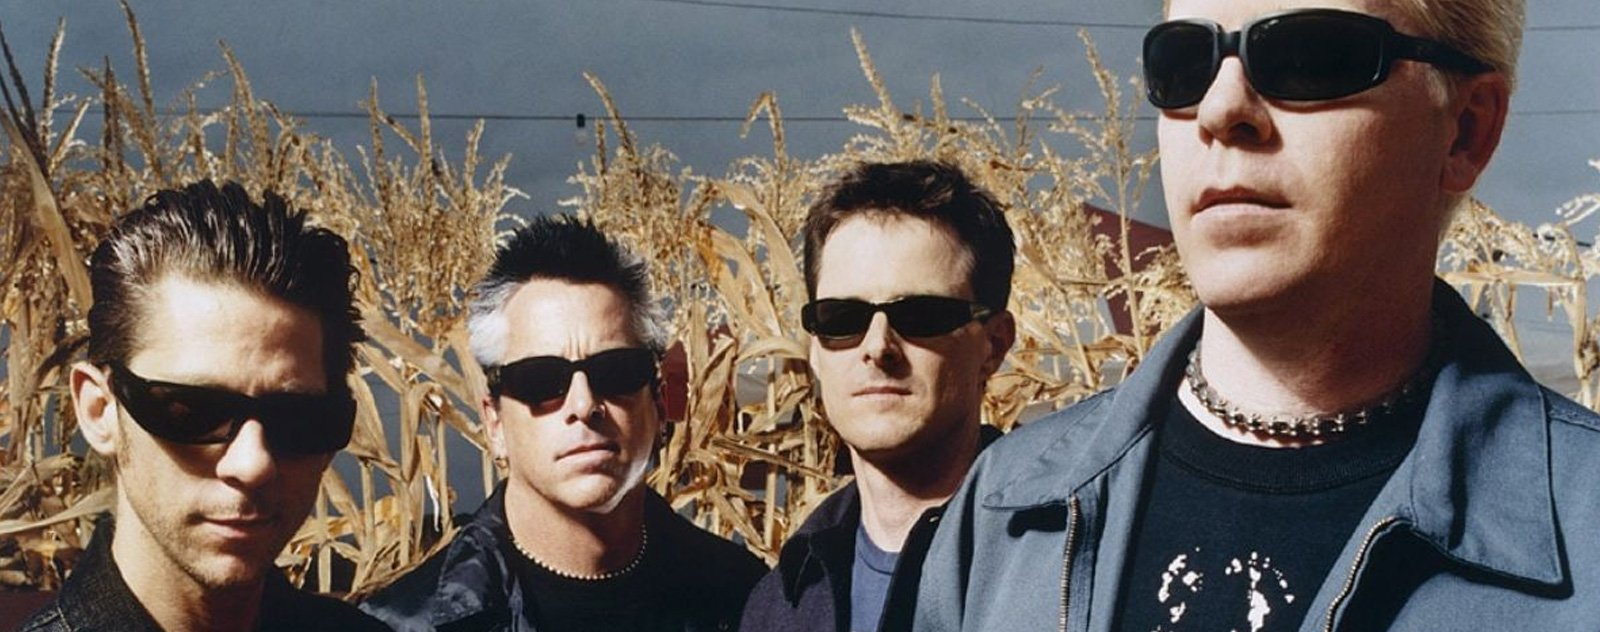 Punk Band The Offspring